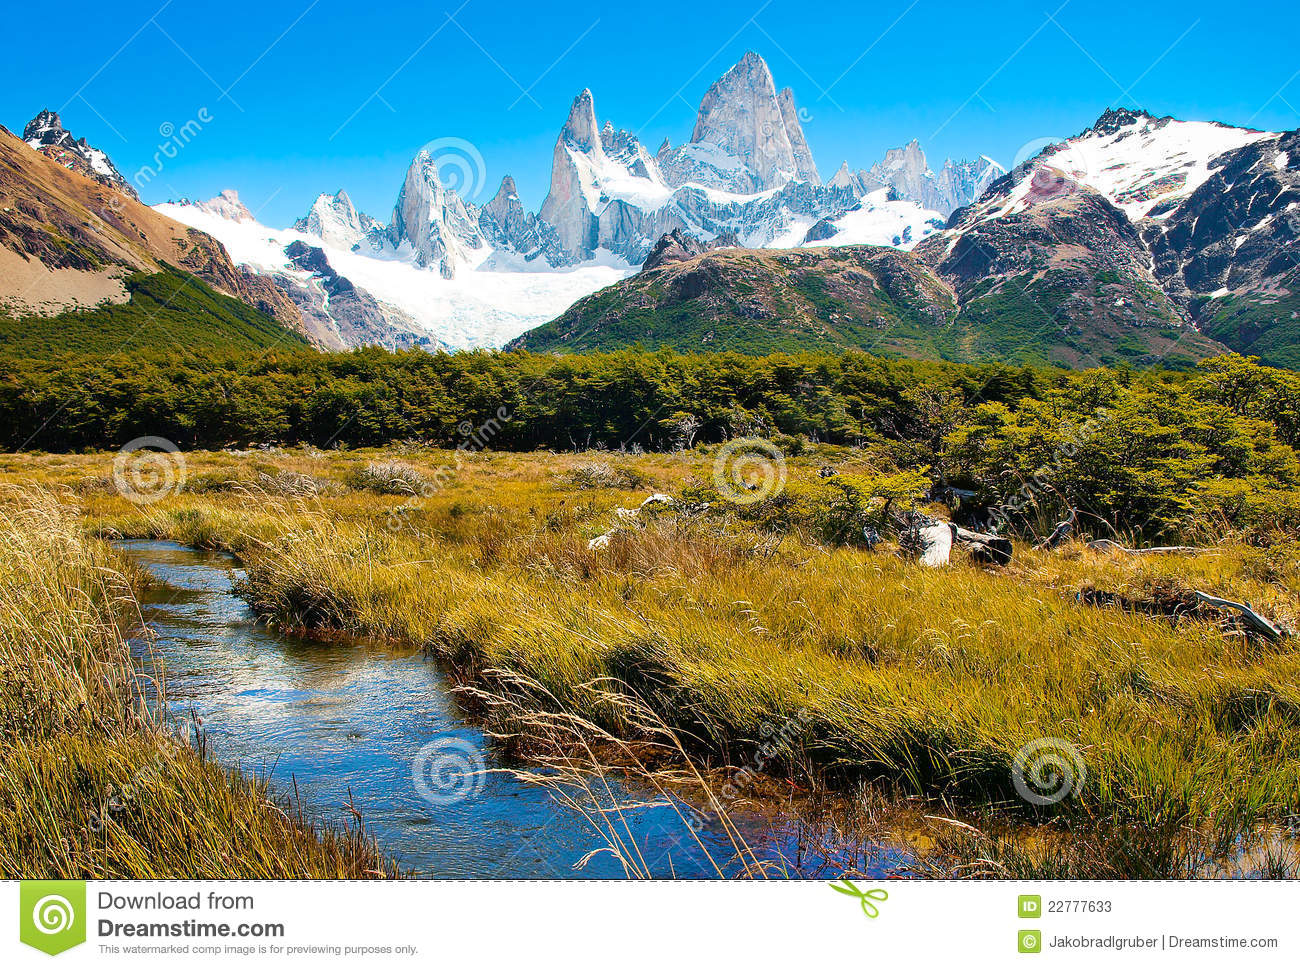 Beautiful nature landscape in Patagonia, Argentina